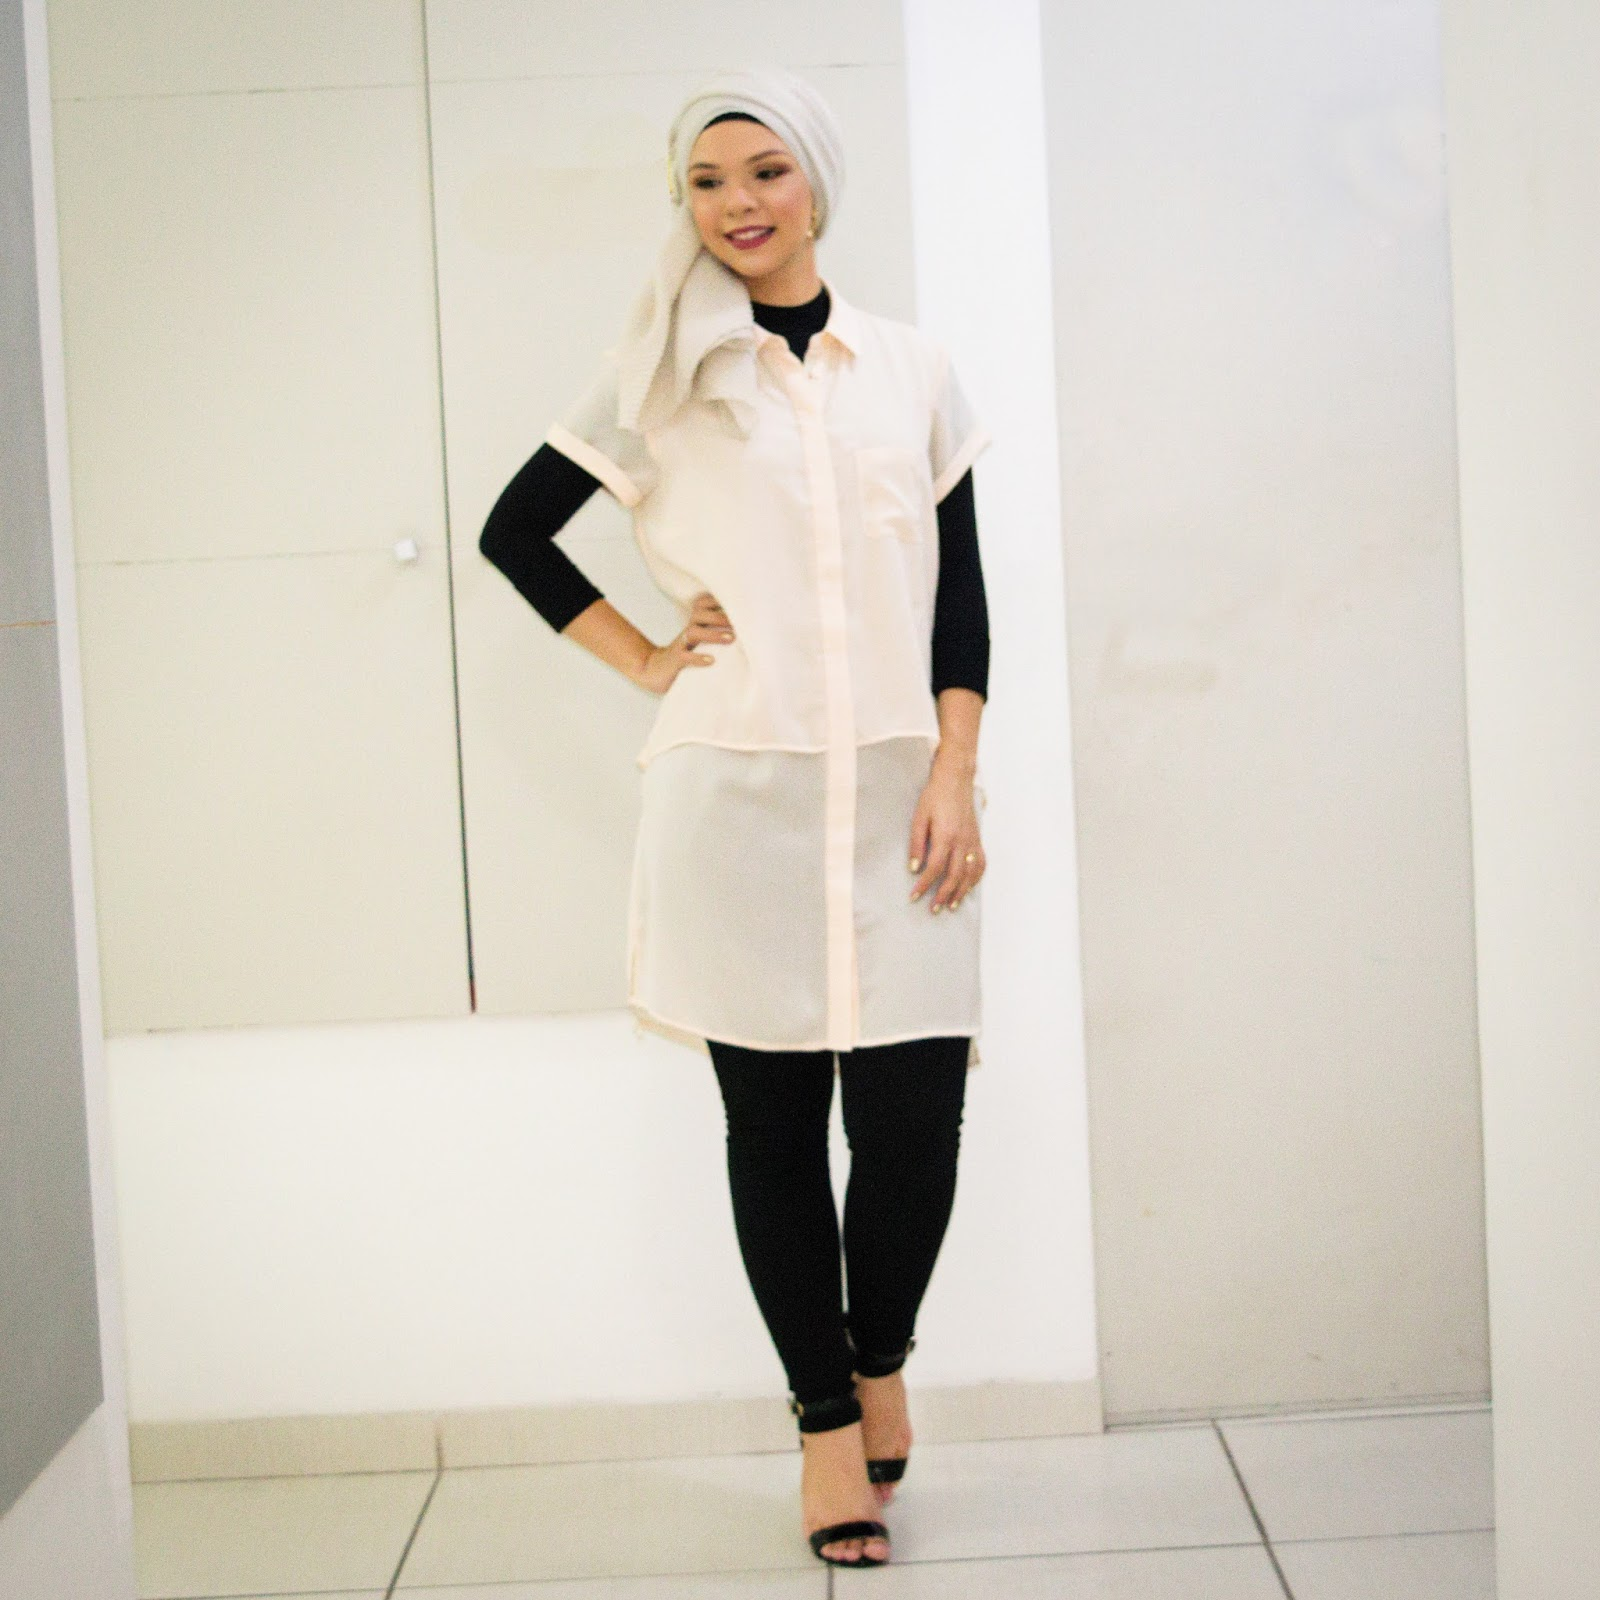 OOTD // Resolutions, freebies and New Year Eve outfit - Simplicity in vogue / @ByAndreaB - new year's resolutions, freebie, desktop wallpaper, screensaver, free, modesty, modest style, modest fashion, modest fashion blogger, muslimah, brazilian muslimah, hijab, hijab style, how to wear, how to style, white dress, turban, turban style, believe in yourself, creative, design